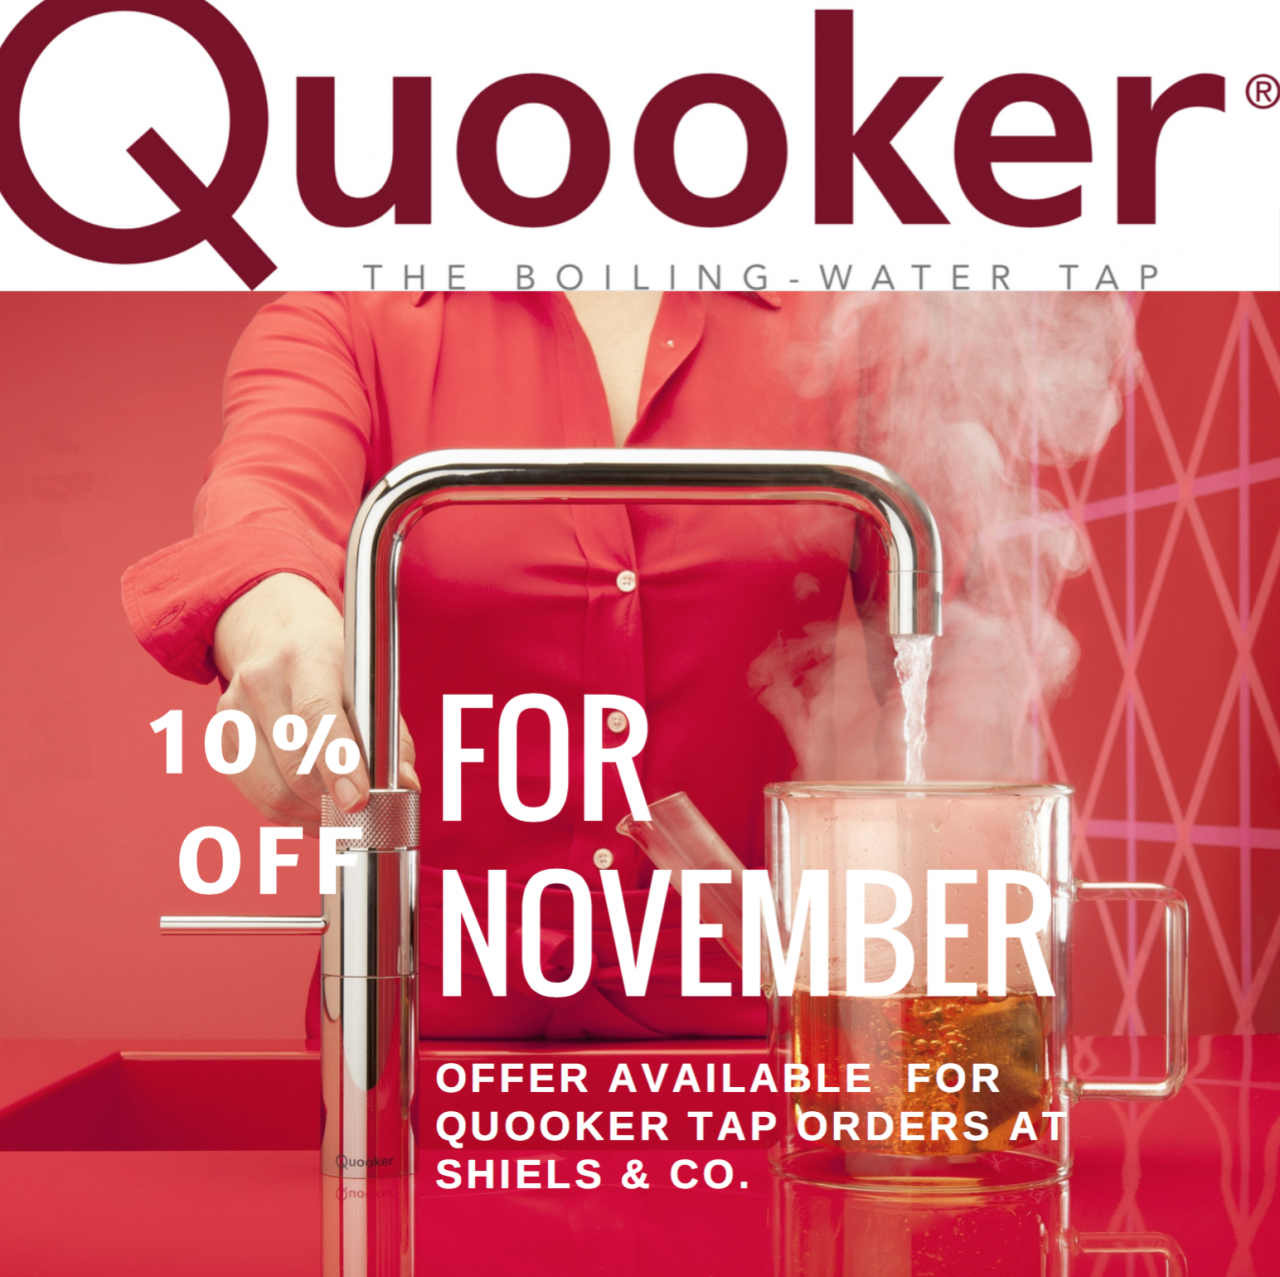 Quooker- the boiling water tap